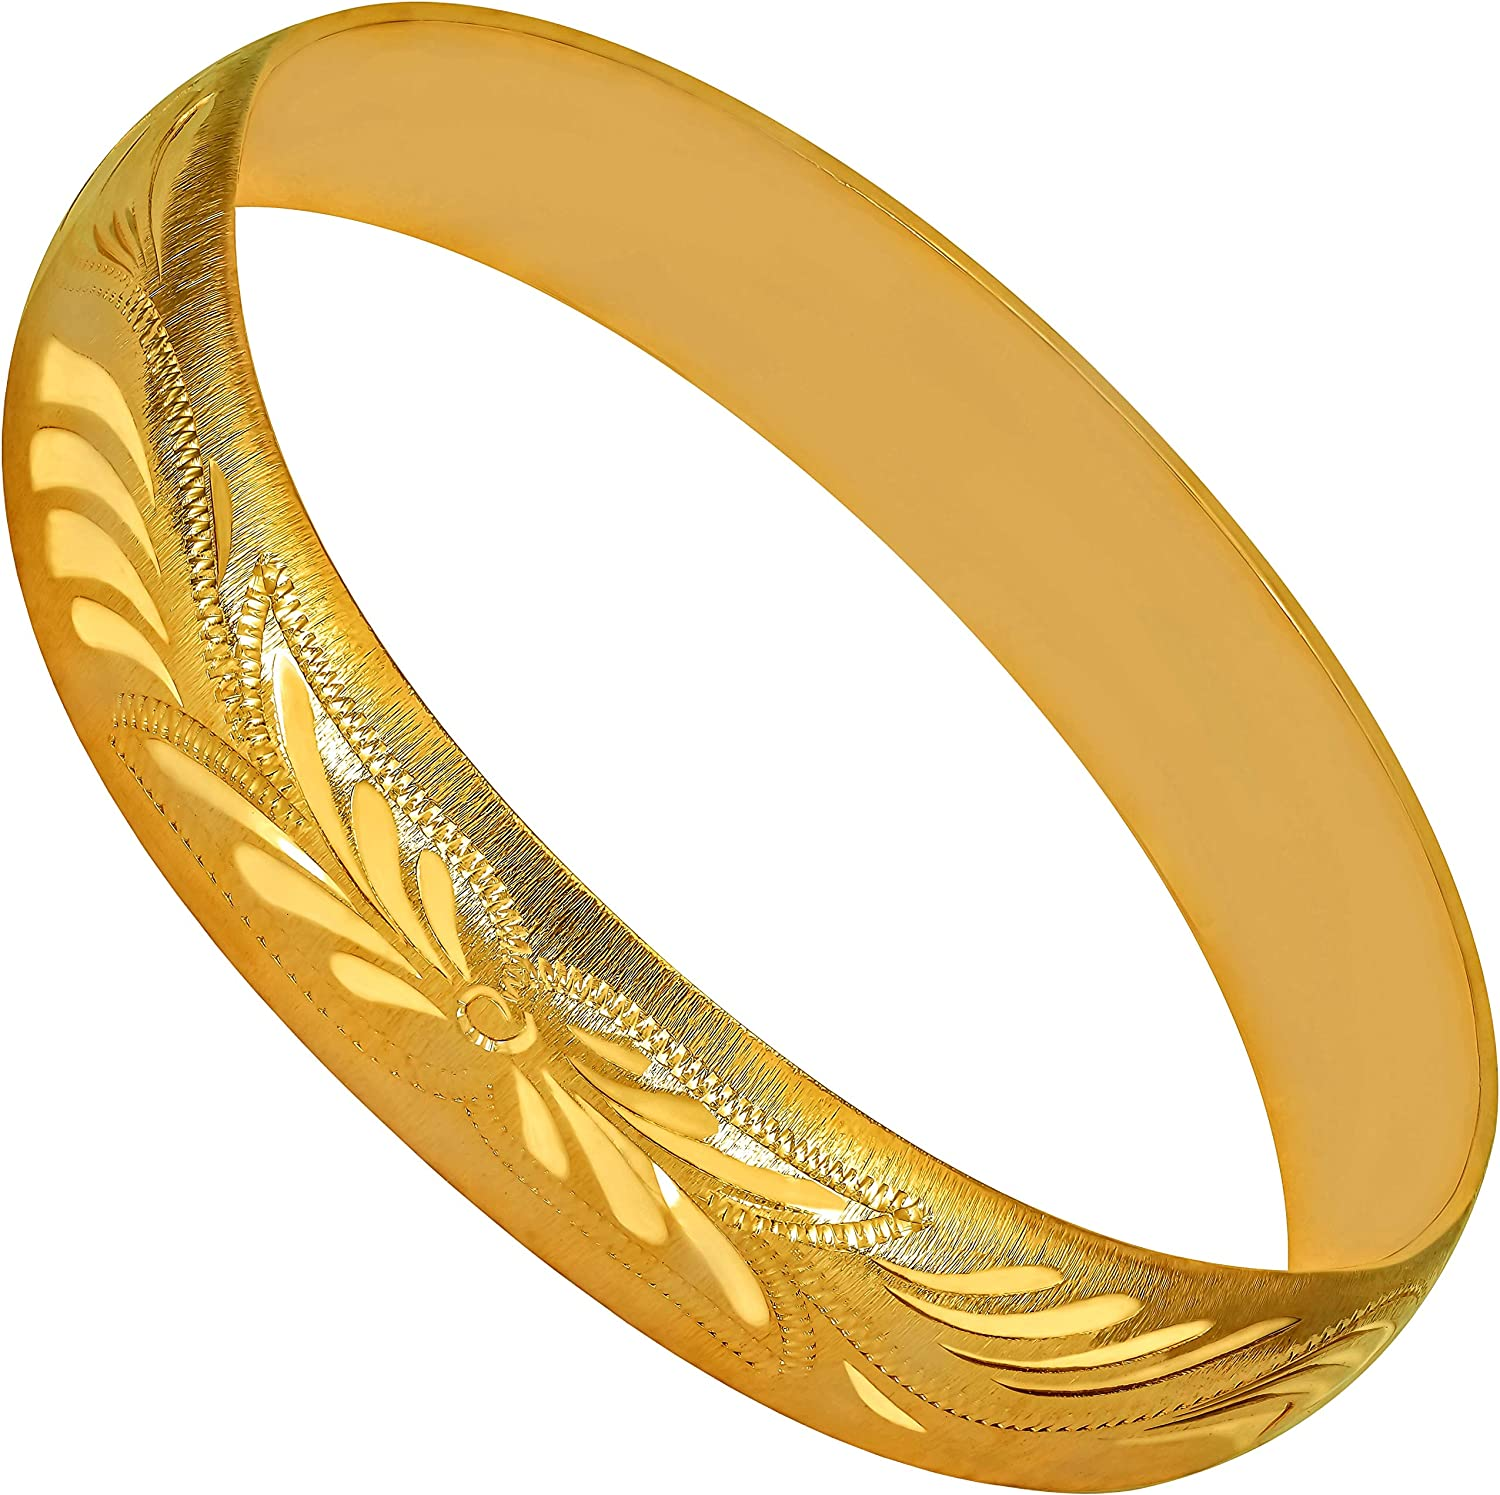 Popular popular LIFETIME JEWELRY 12mm Bangle Bracelet 24k Wholesale W Plated for Gold Real